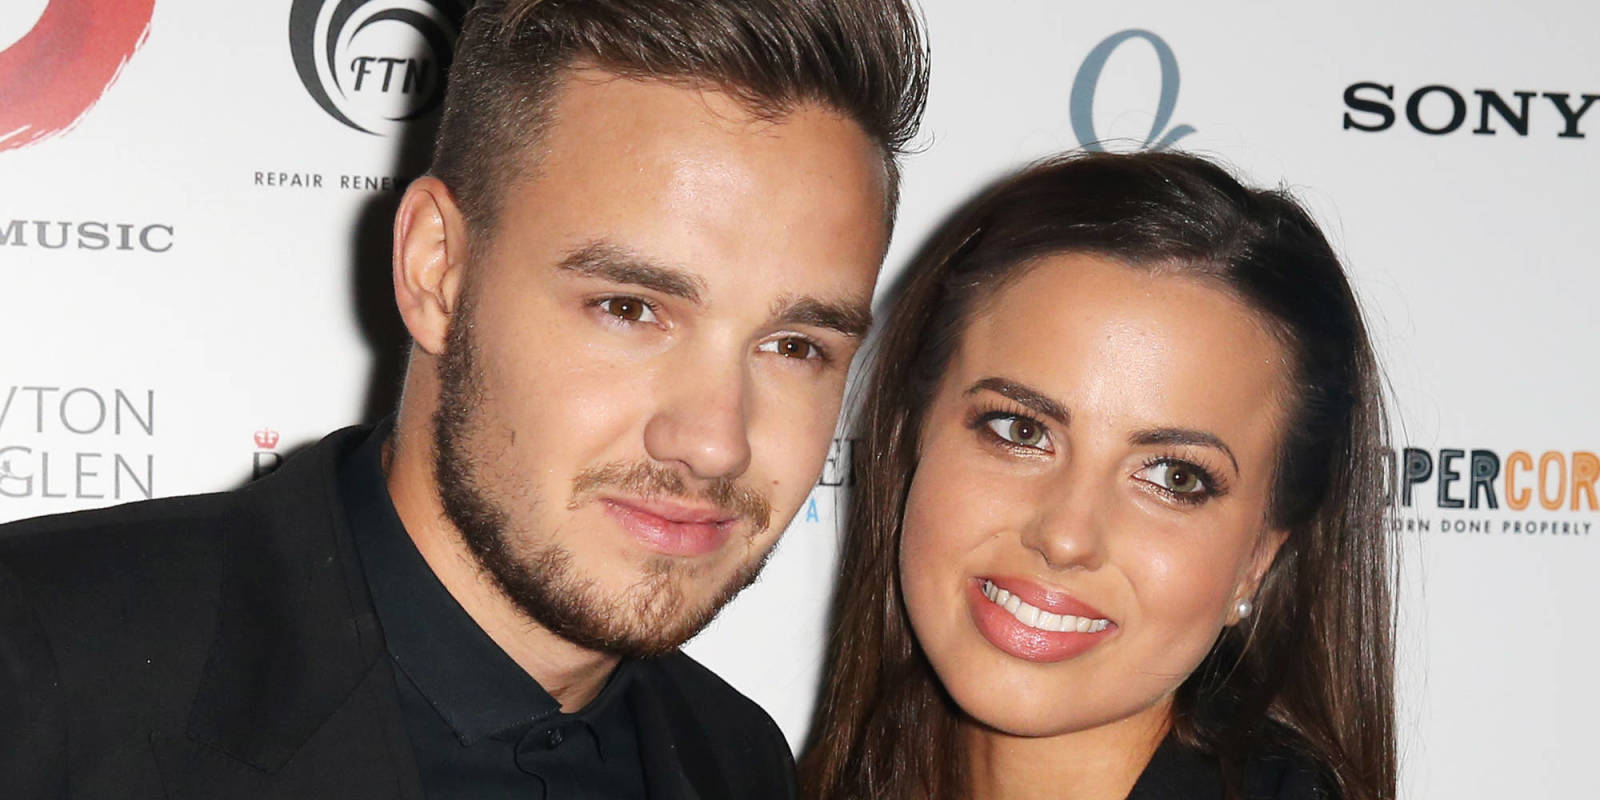 sophia smith and liam payne dating sophie